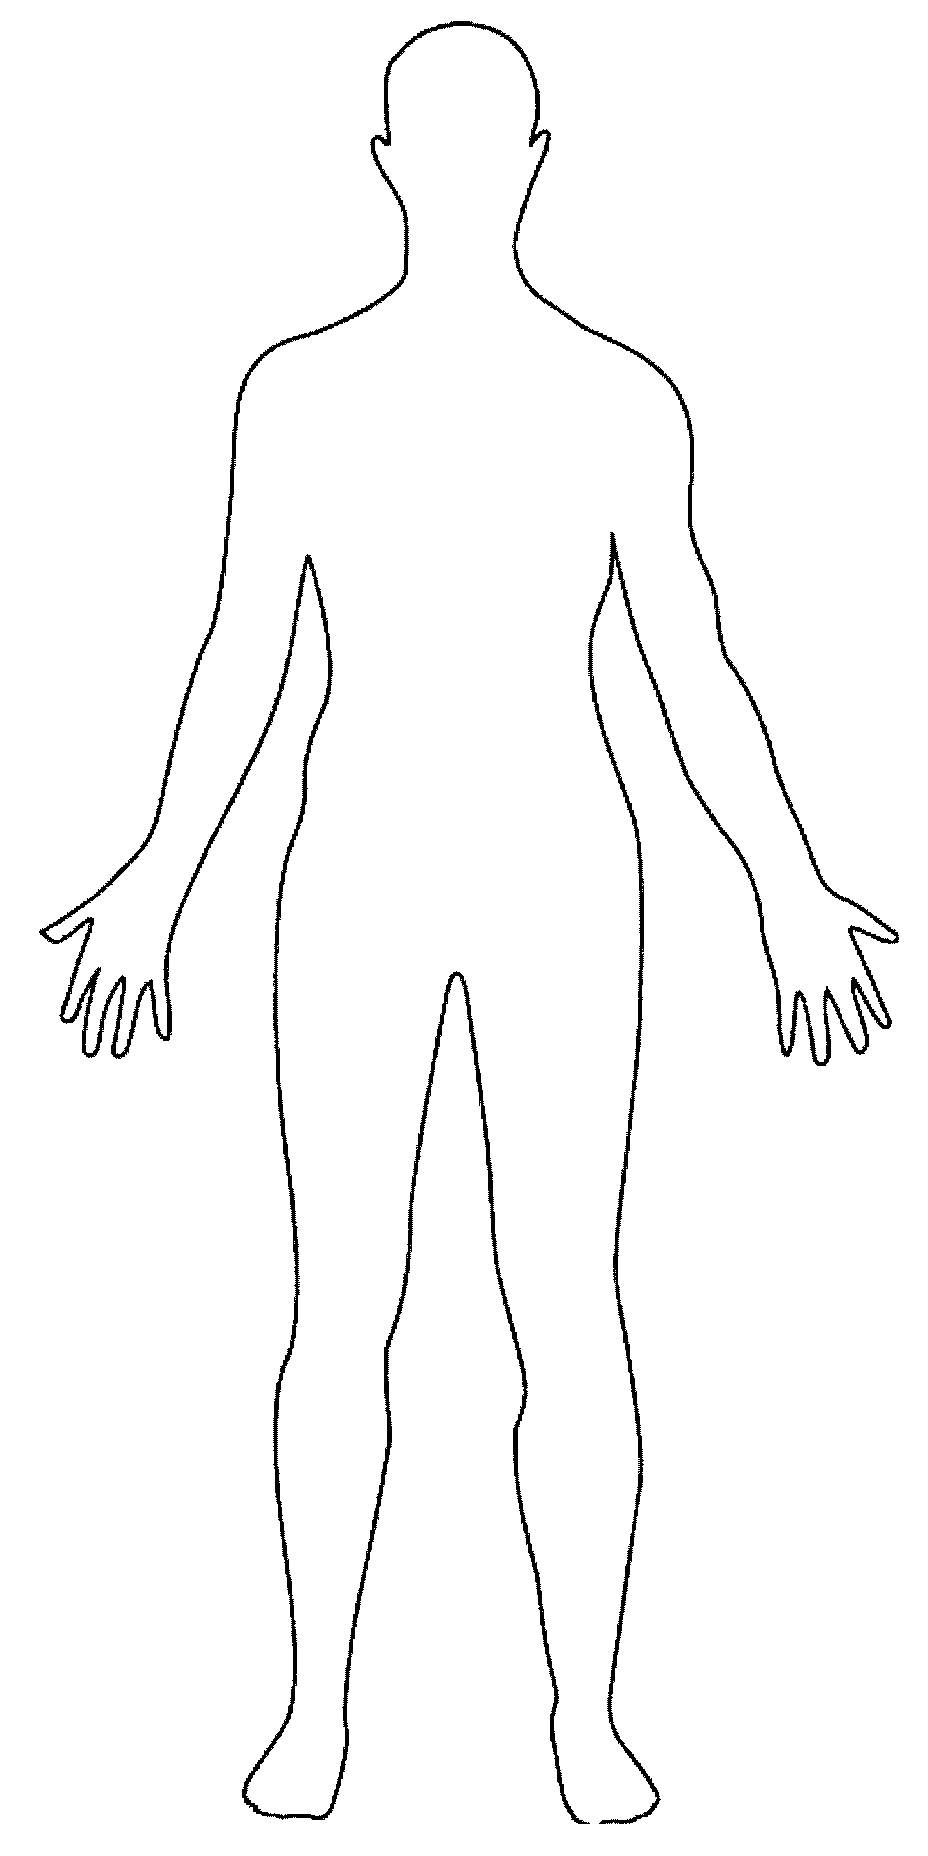 drawing – Anica Lewis Outline Of A Human Body